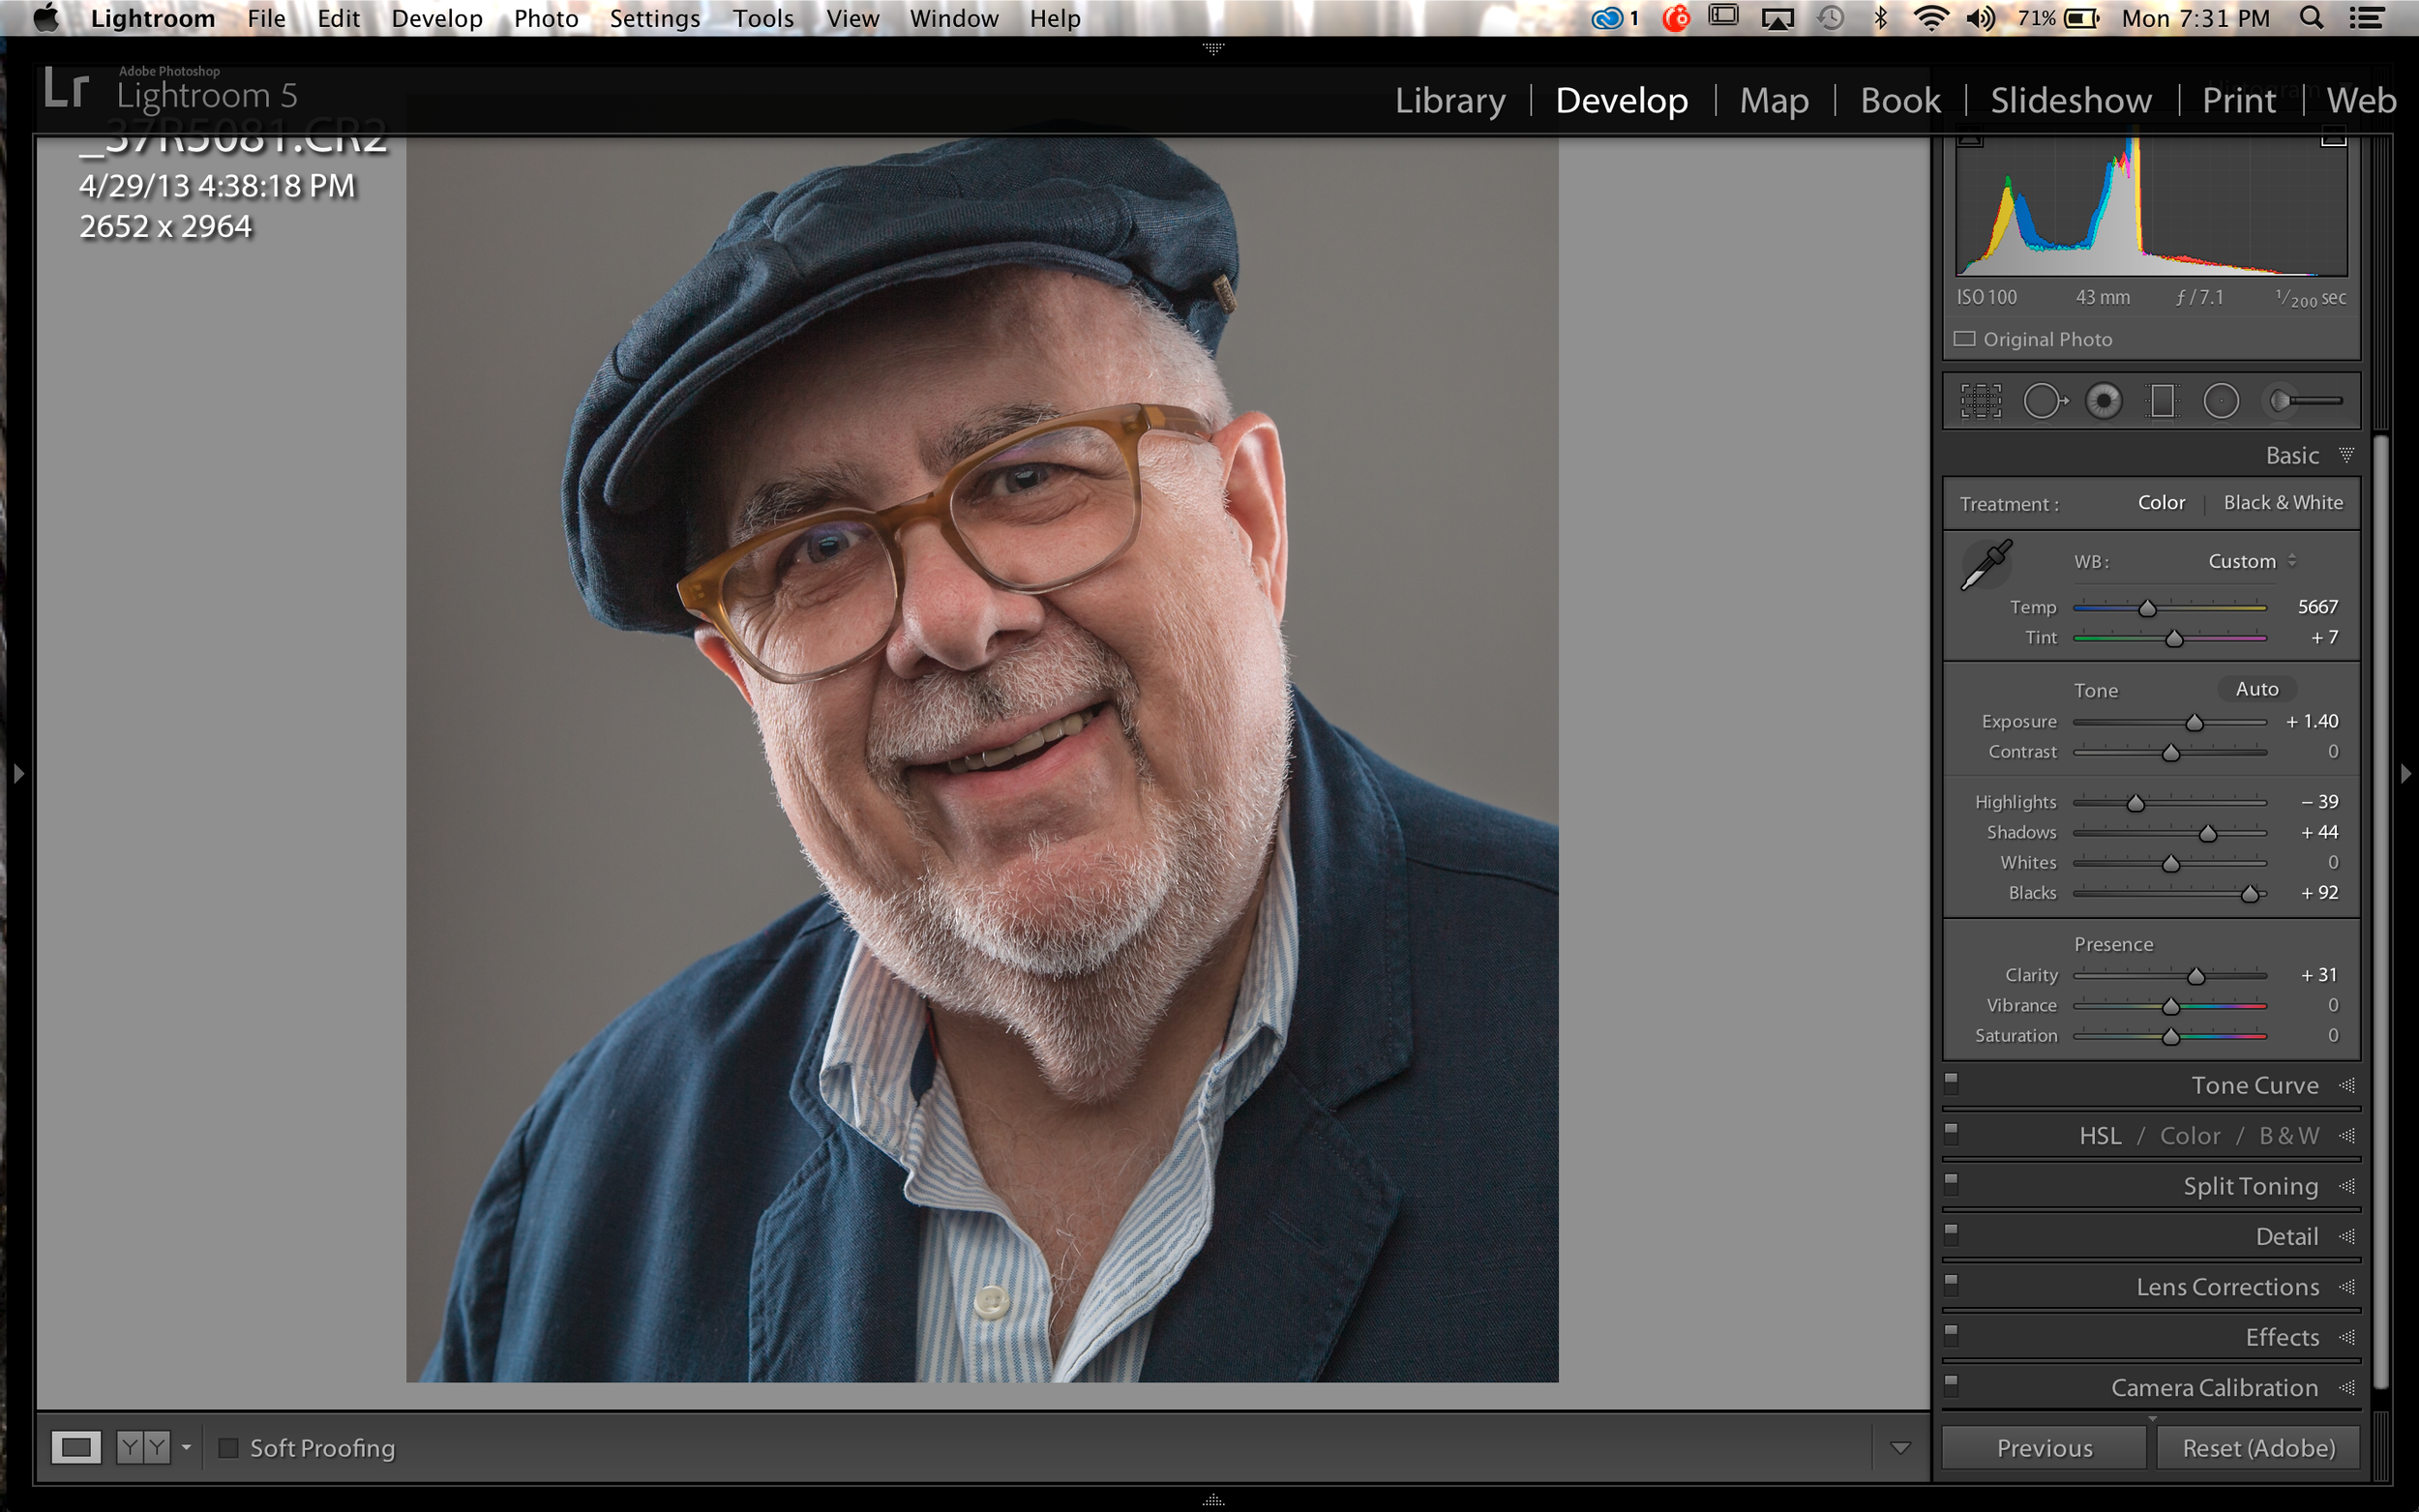 Raw image in Lightroom after processing and ready to go into PS CC.